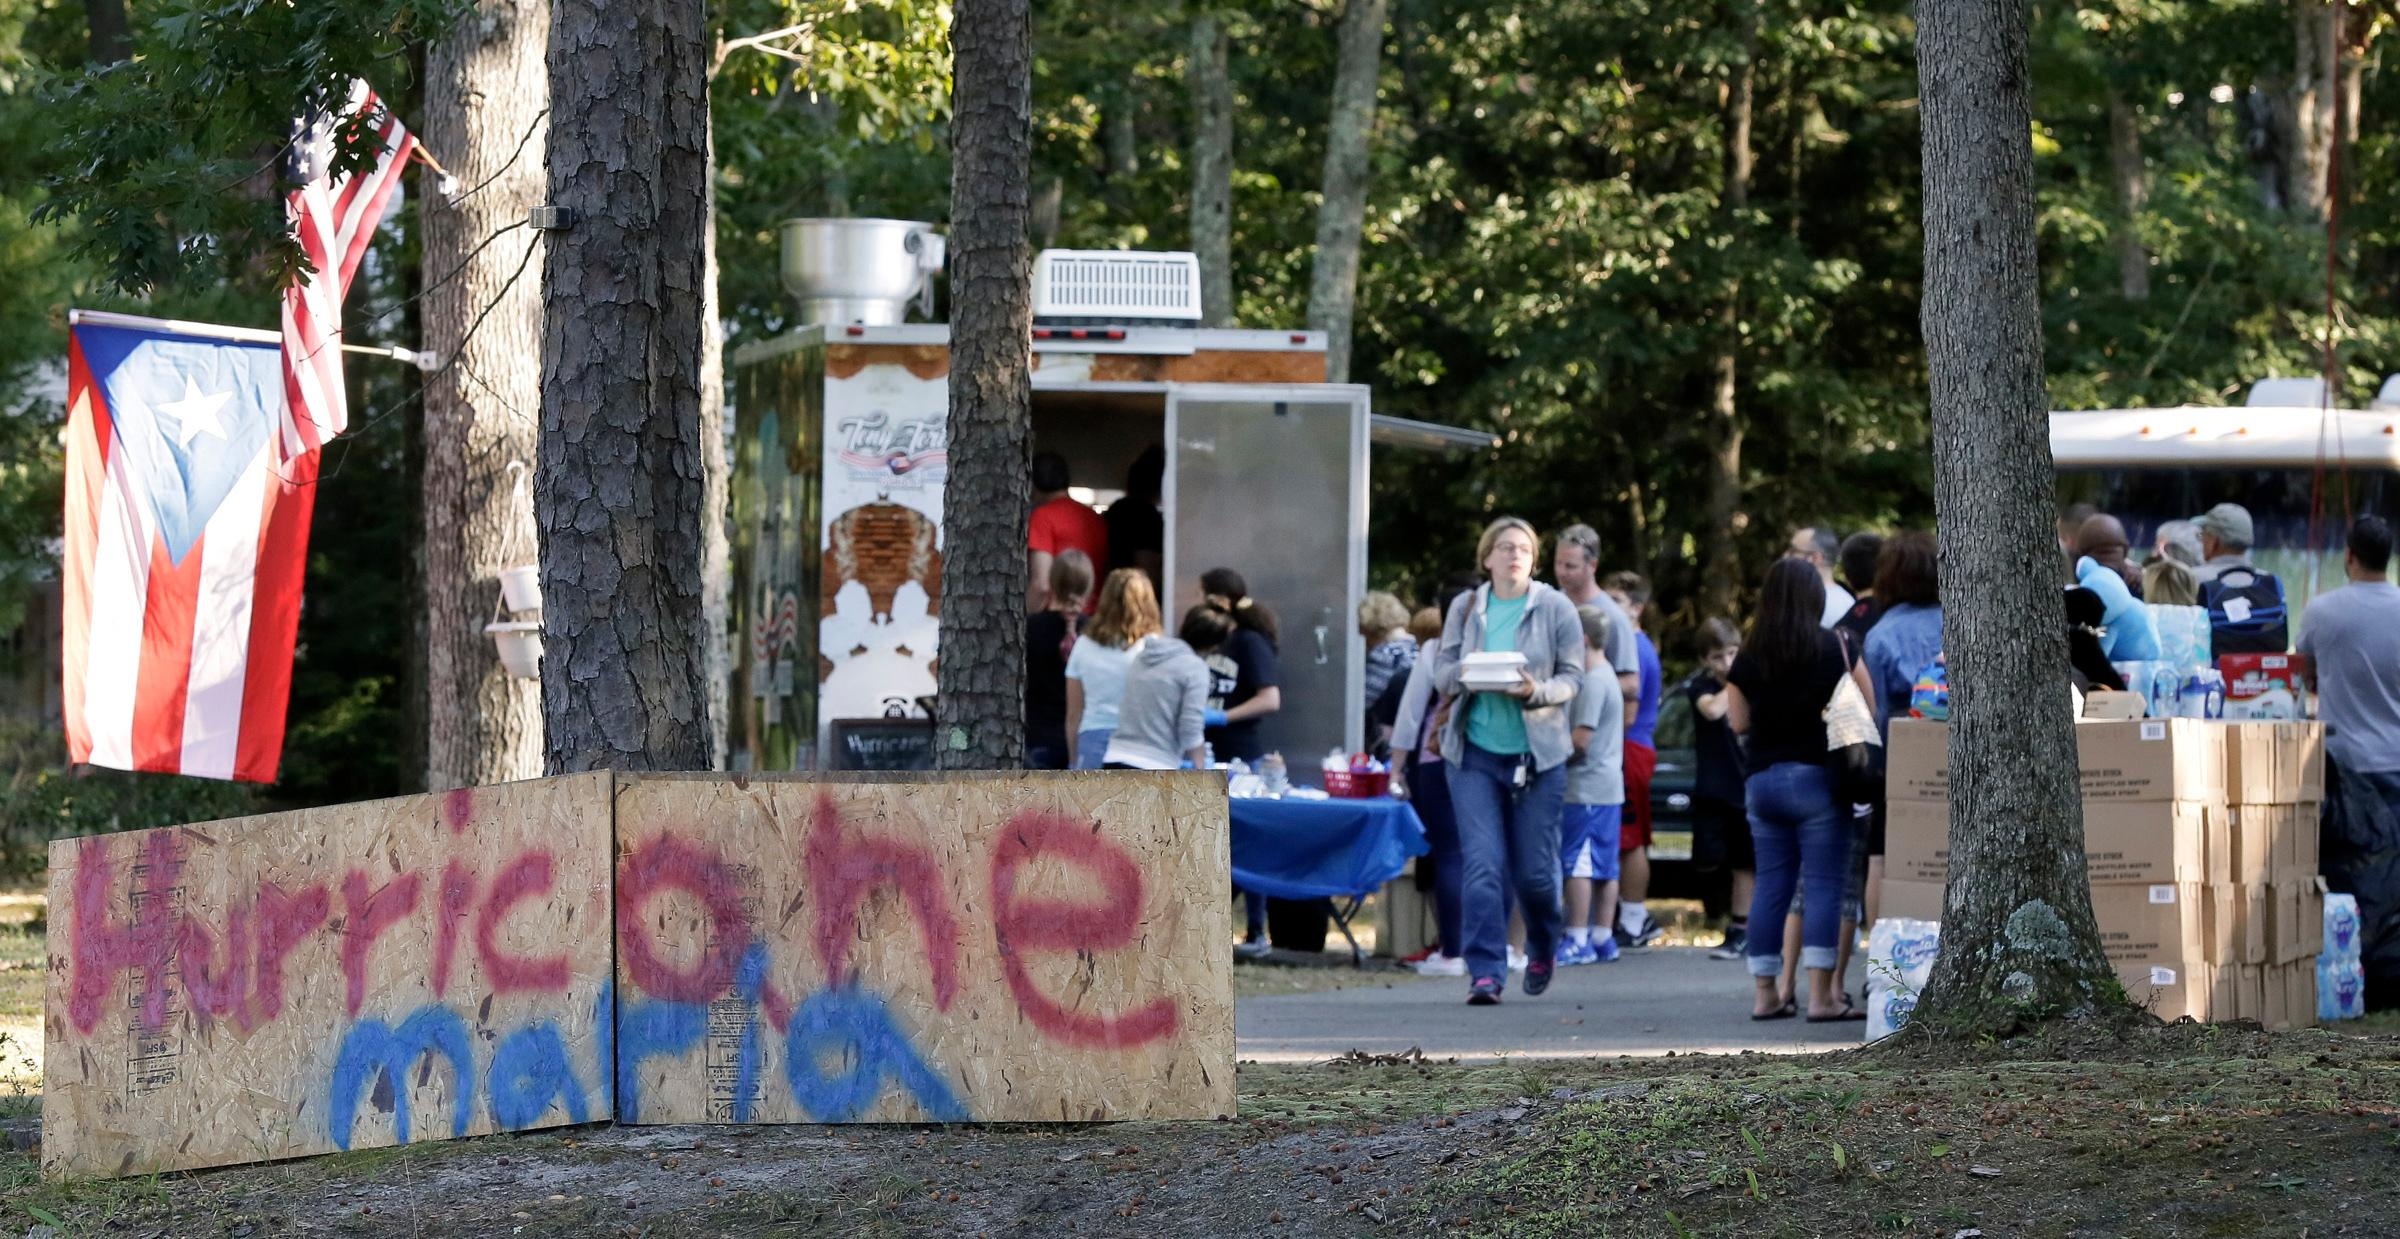 People participate in the food truck fundraiser for the people of Puerto Rico in the devastating aftermath of Hurricane Maria at Anthony Barber and Victoria Martinez-Barber's home, Friday, Sept. 29, 2017, in Medford, N.J. The couple teamed up with survivalist Joseph Badame whose multitude of stored food and supplies were donated to the victims of the hurricane.  (Elizabeth Robertson/The Philadelphia Inquirer via AP)